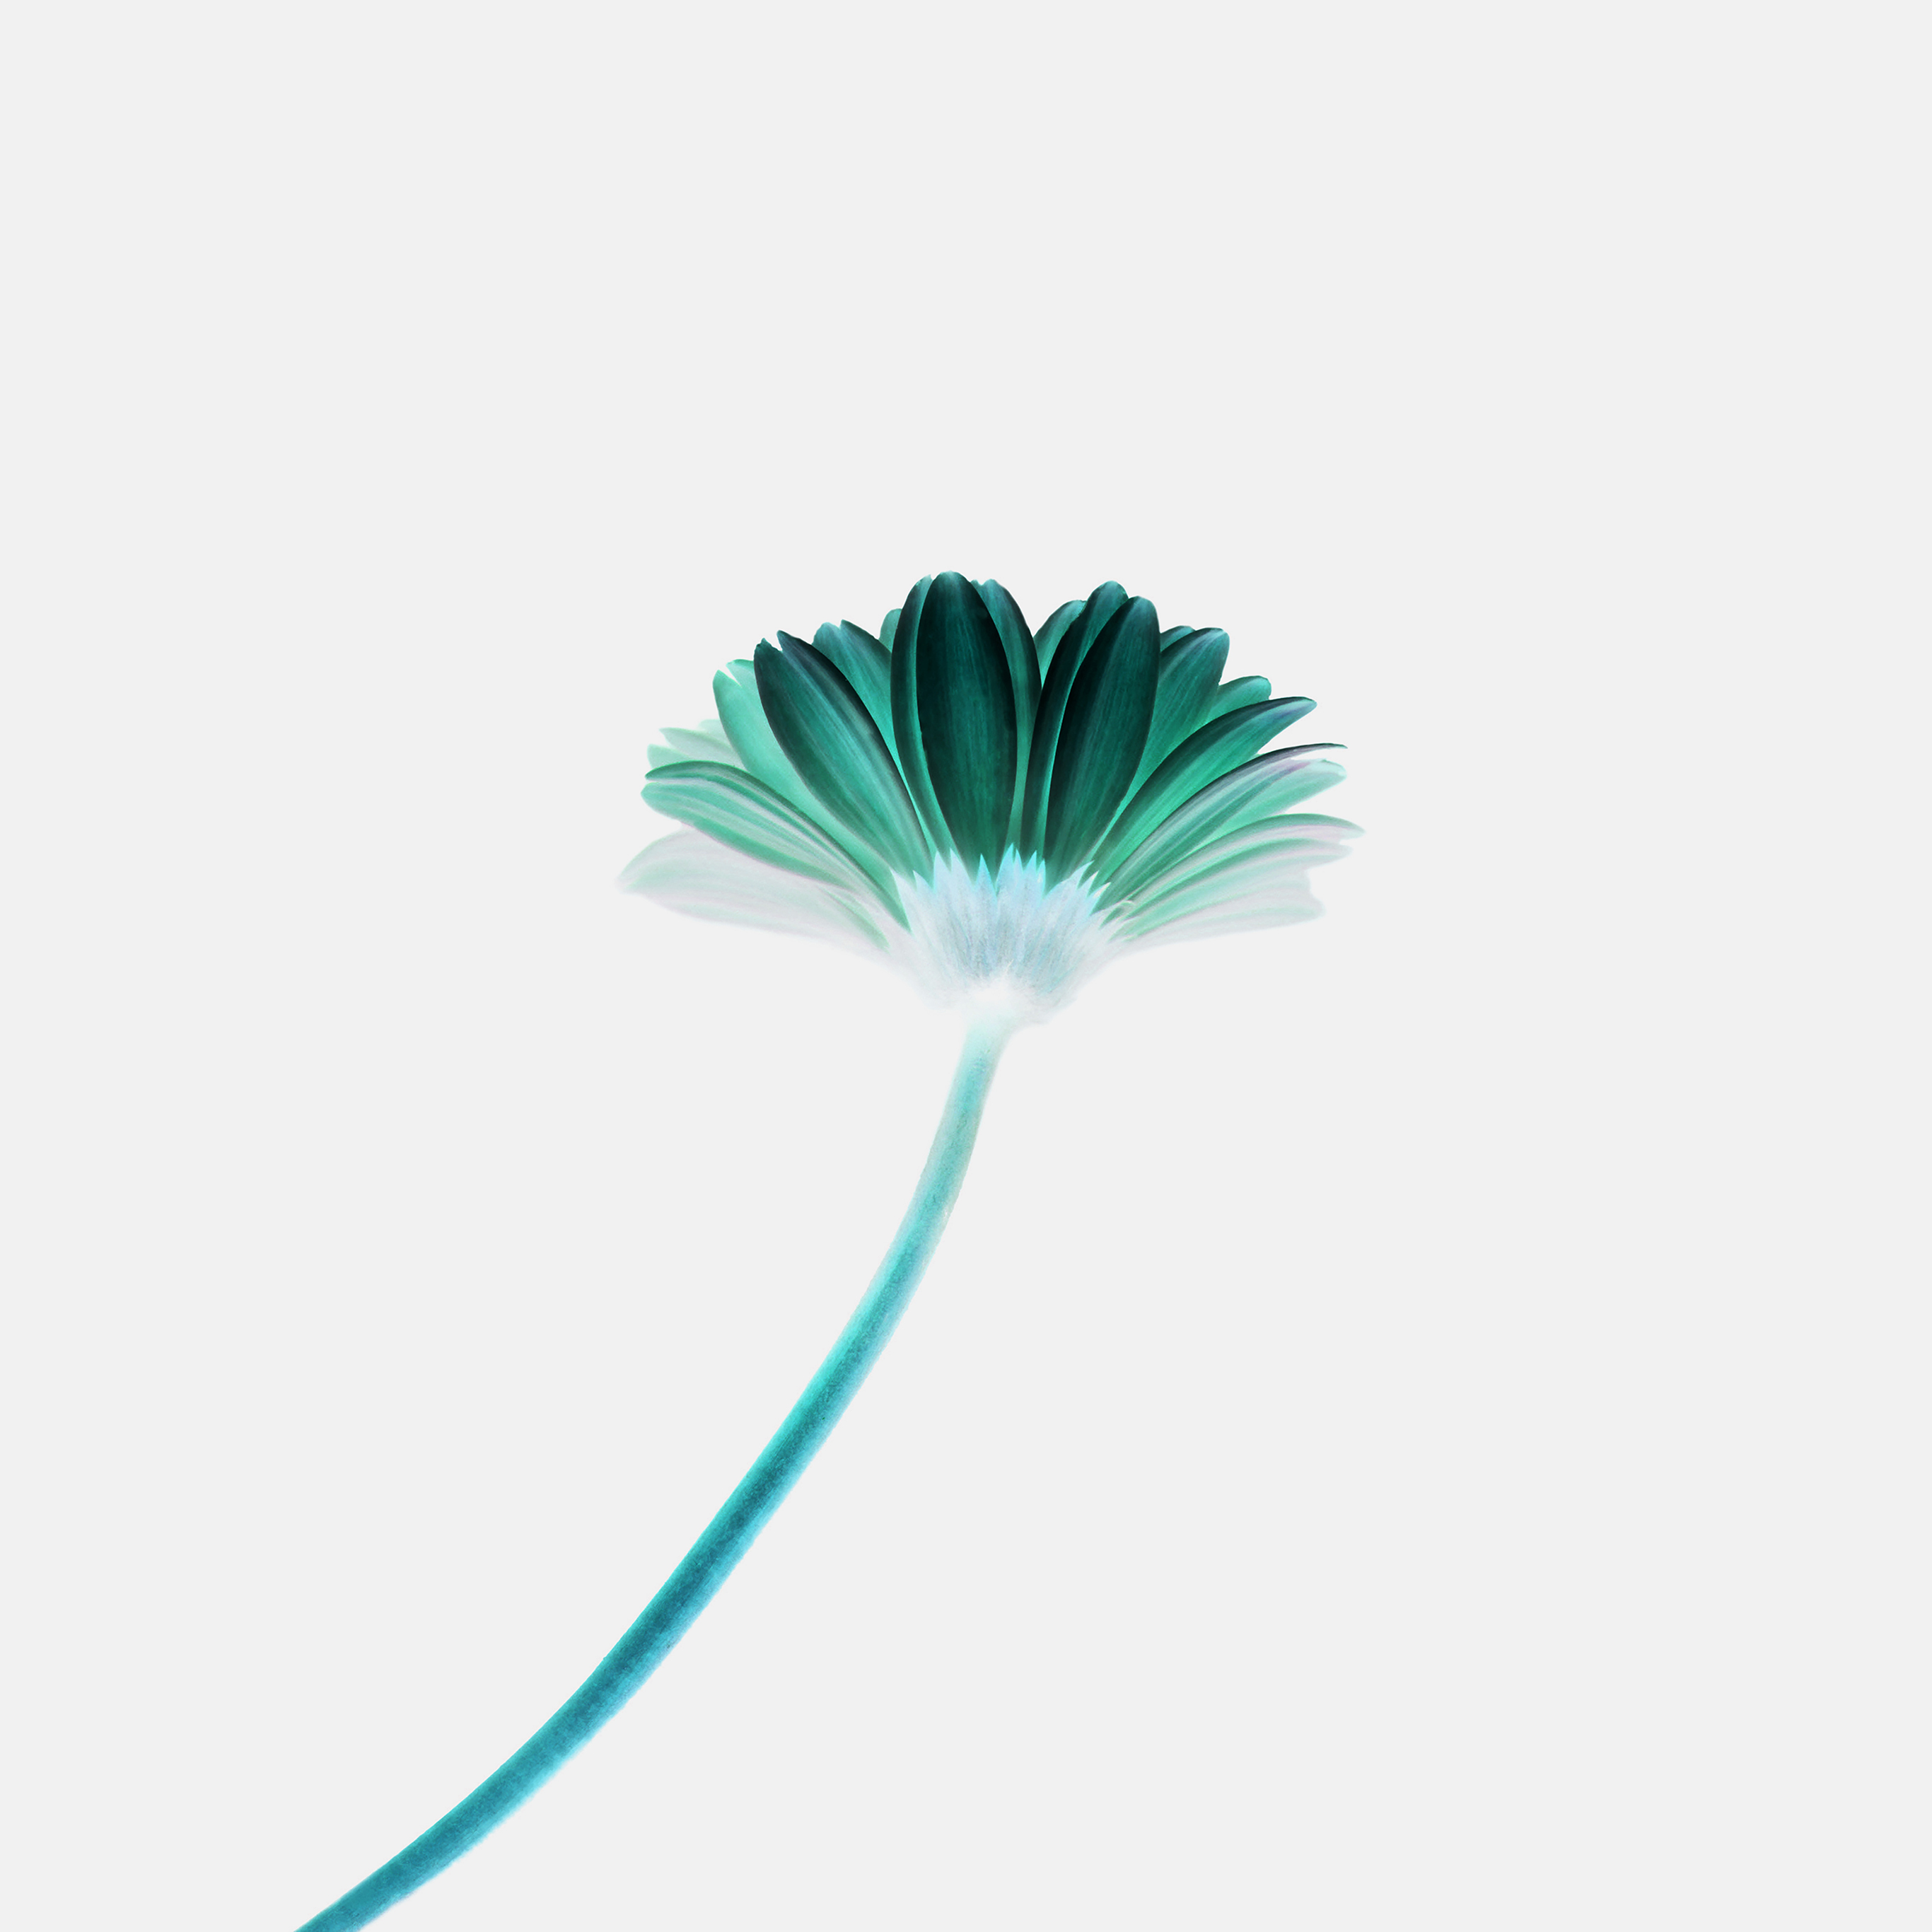 Mk68-lonely-flower-white-green-simple-minimal-nature